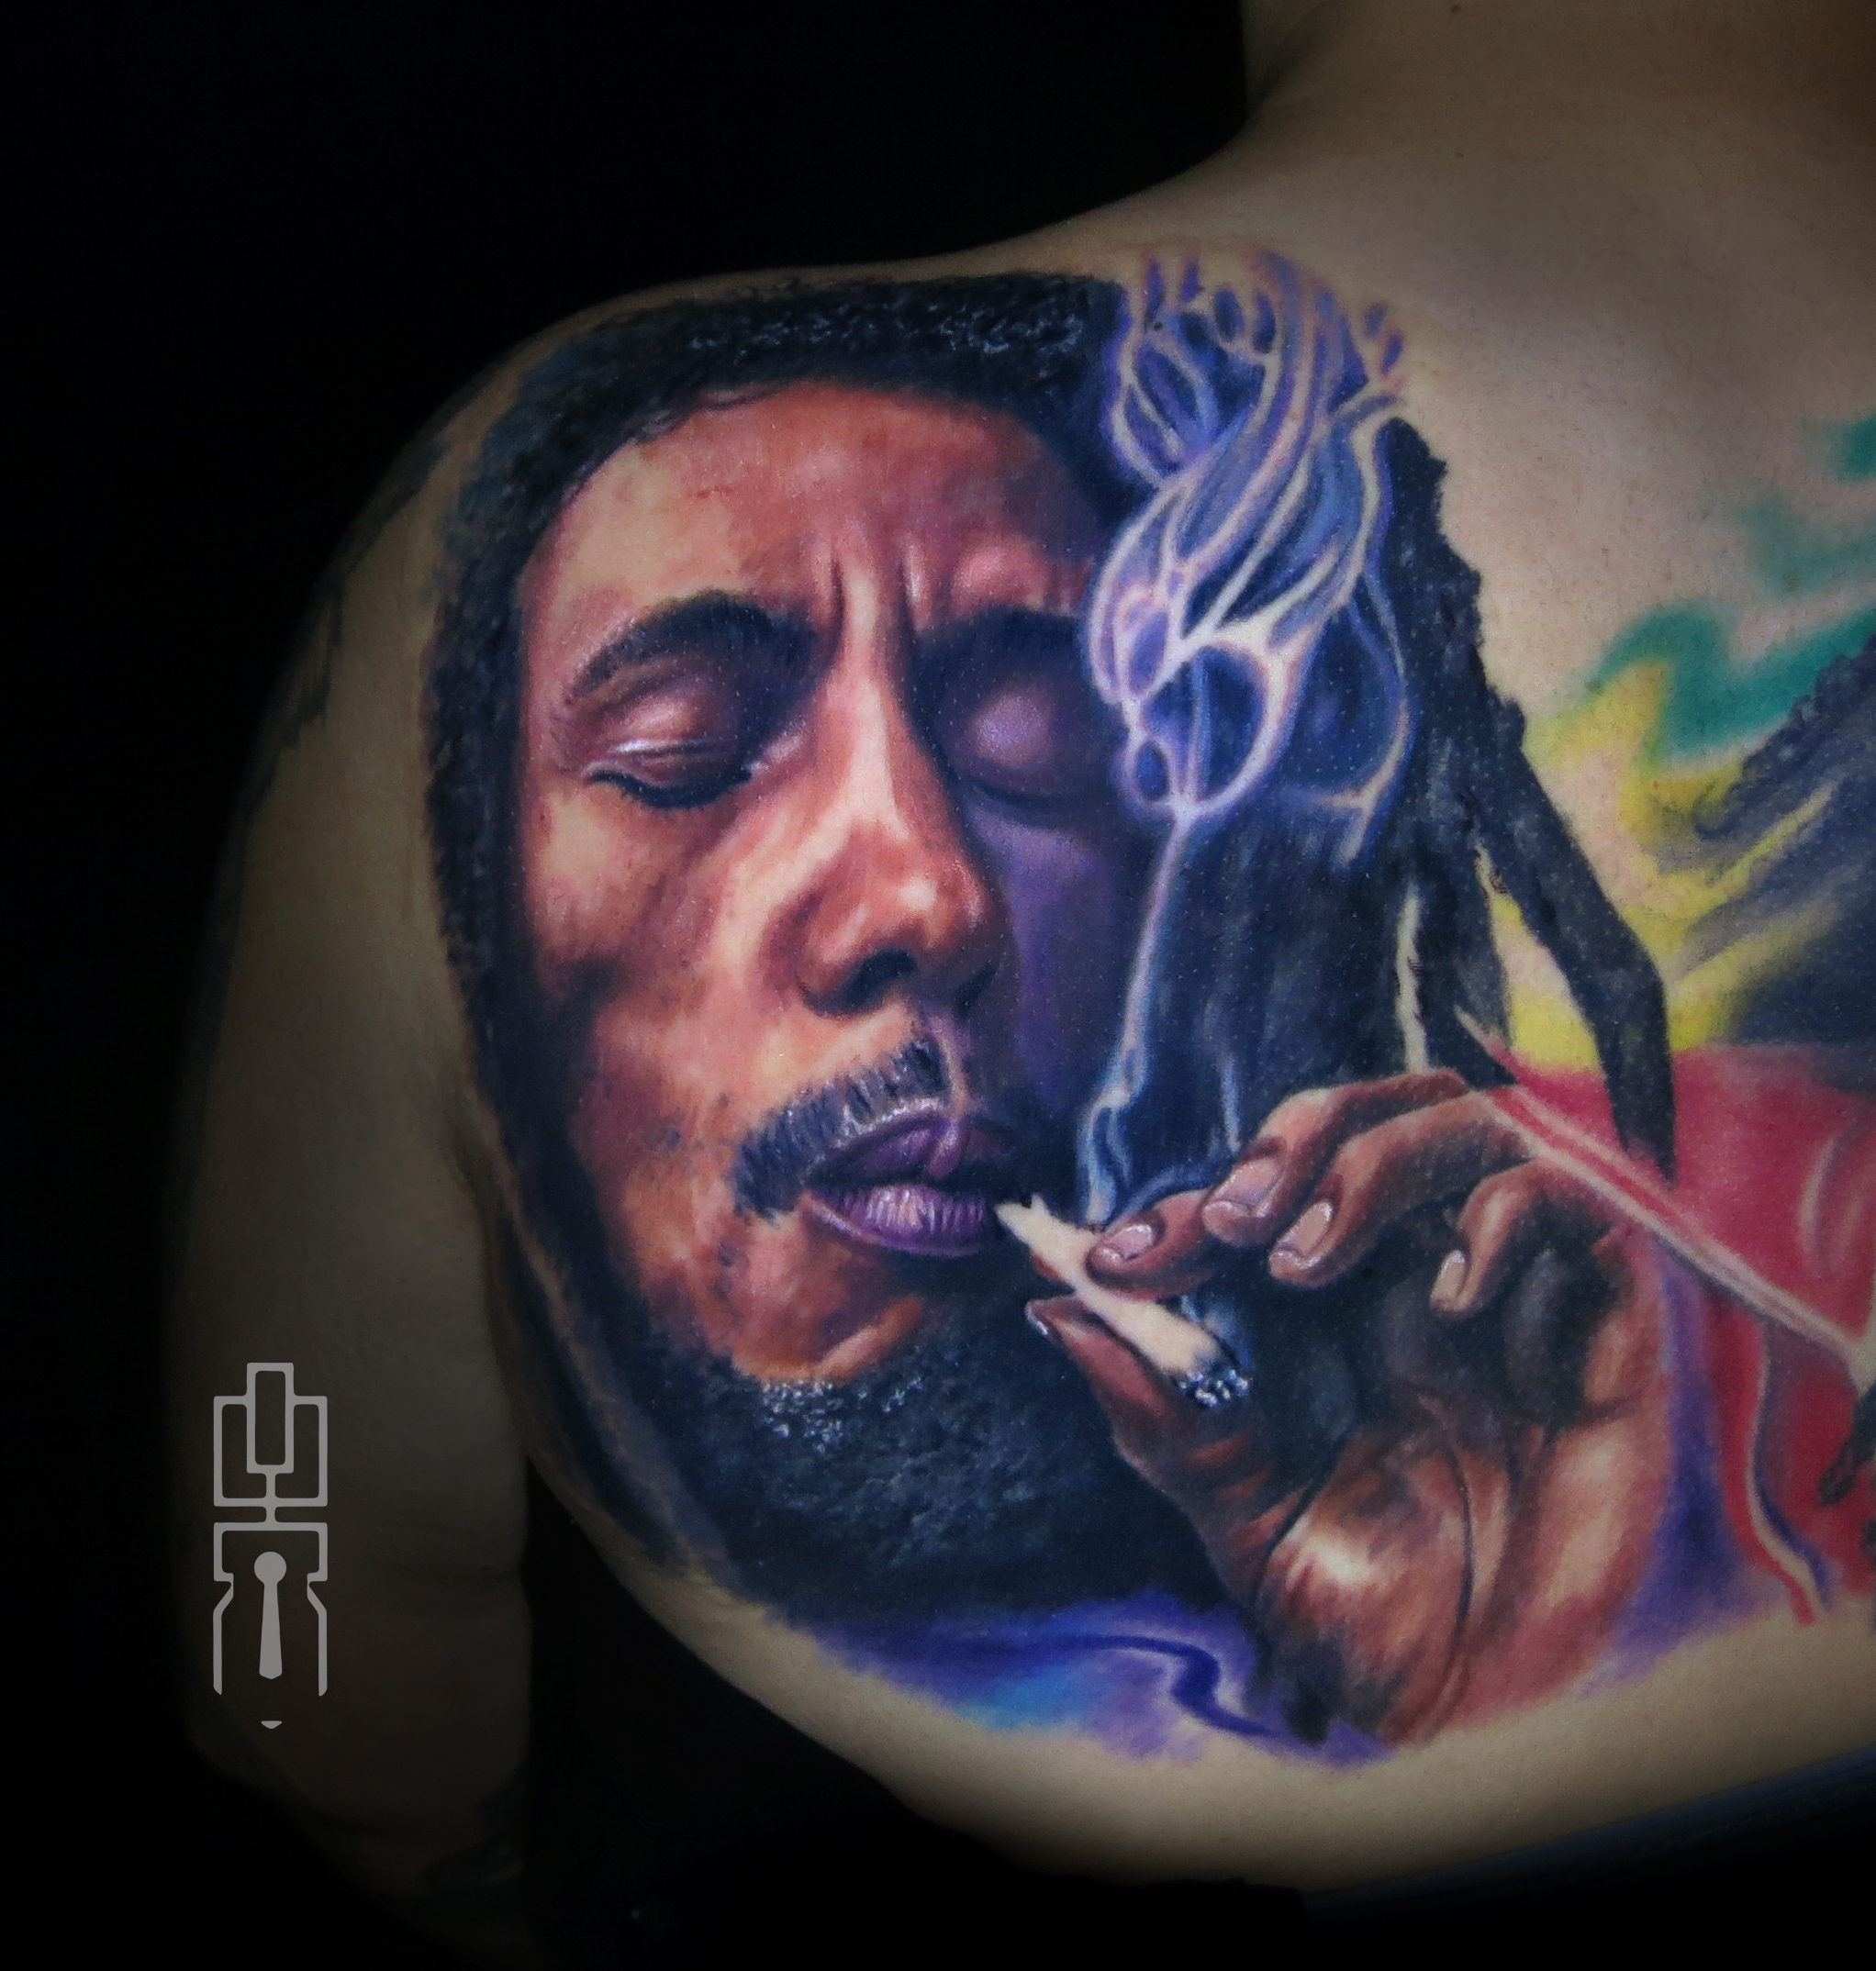 bob marley smoking tattoo.jpg